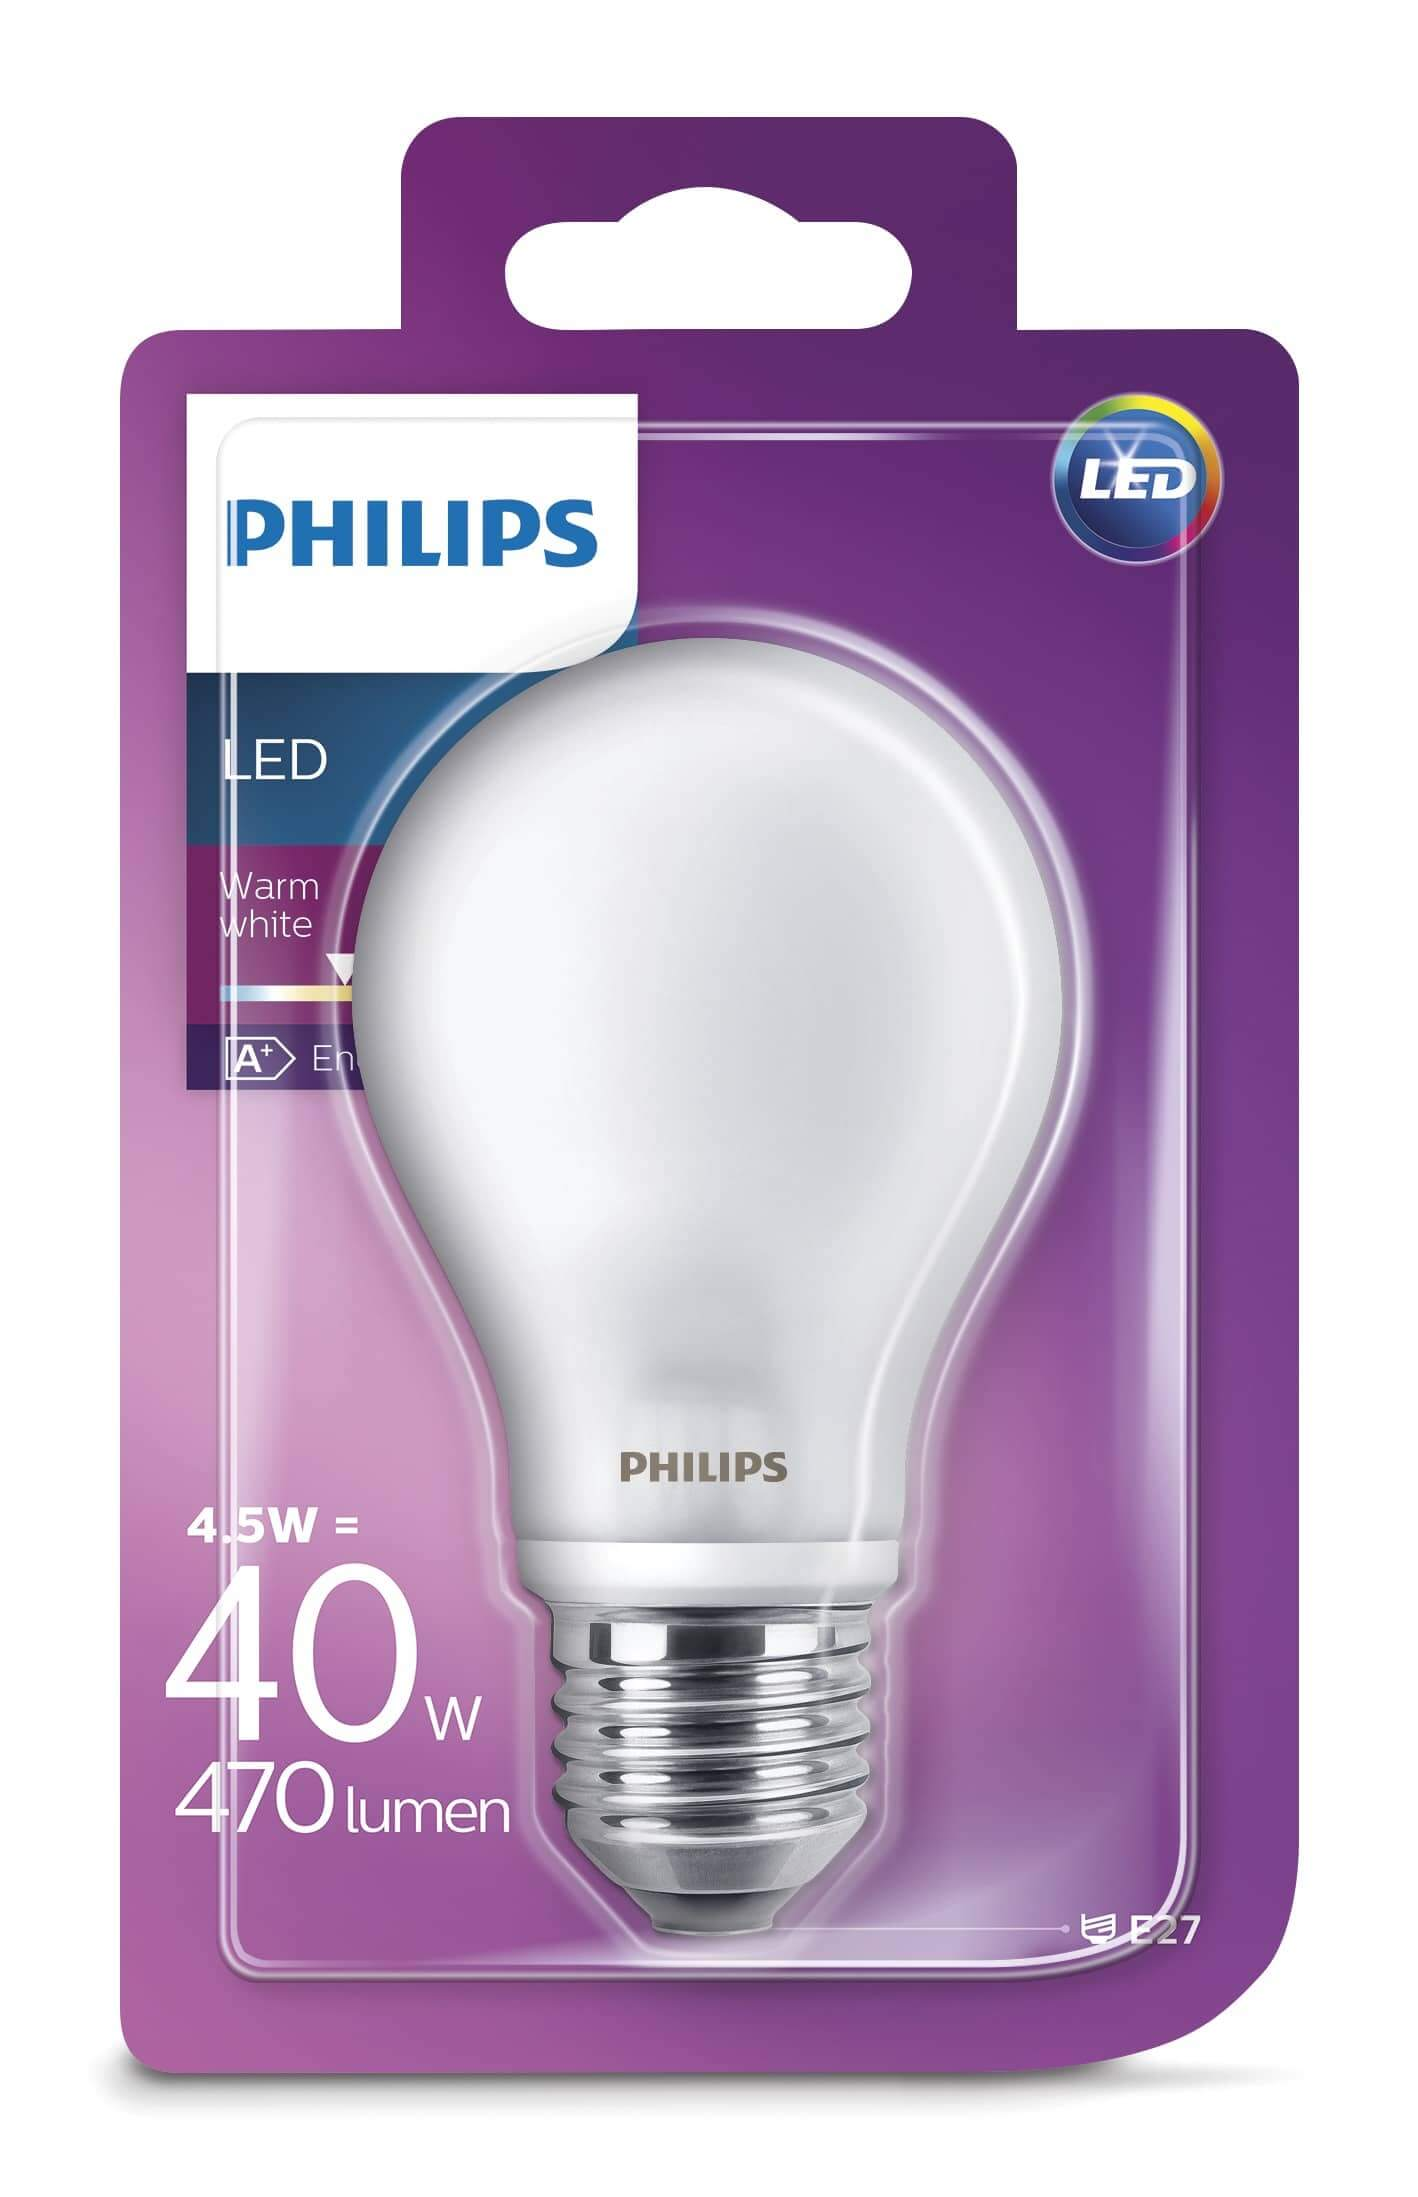 philips e27 led birne ledclassic 4 5w 470lm warmweiss hier kaufen. Black Bedroom Furniture Sets. Home Design Ideas